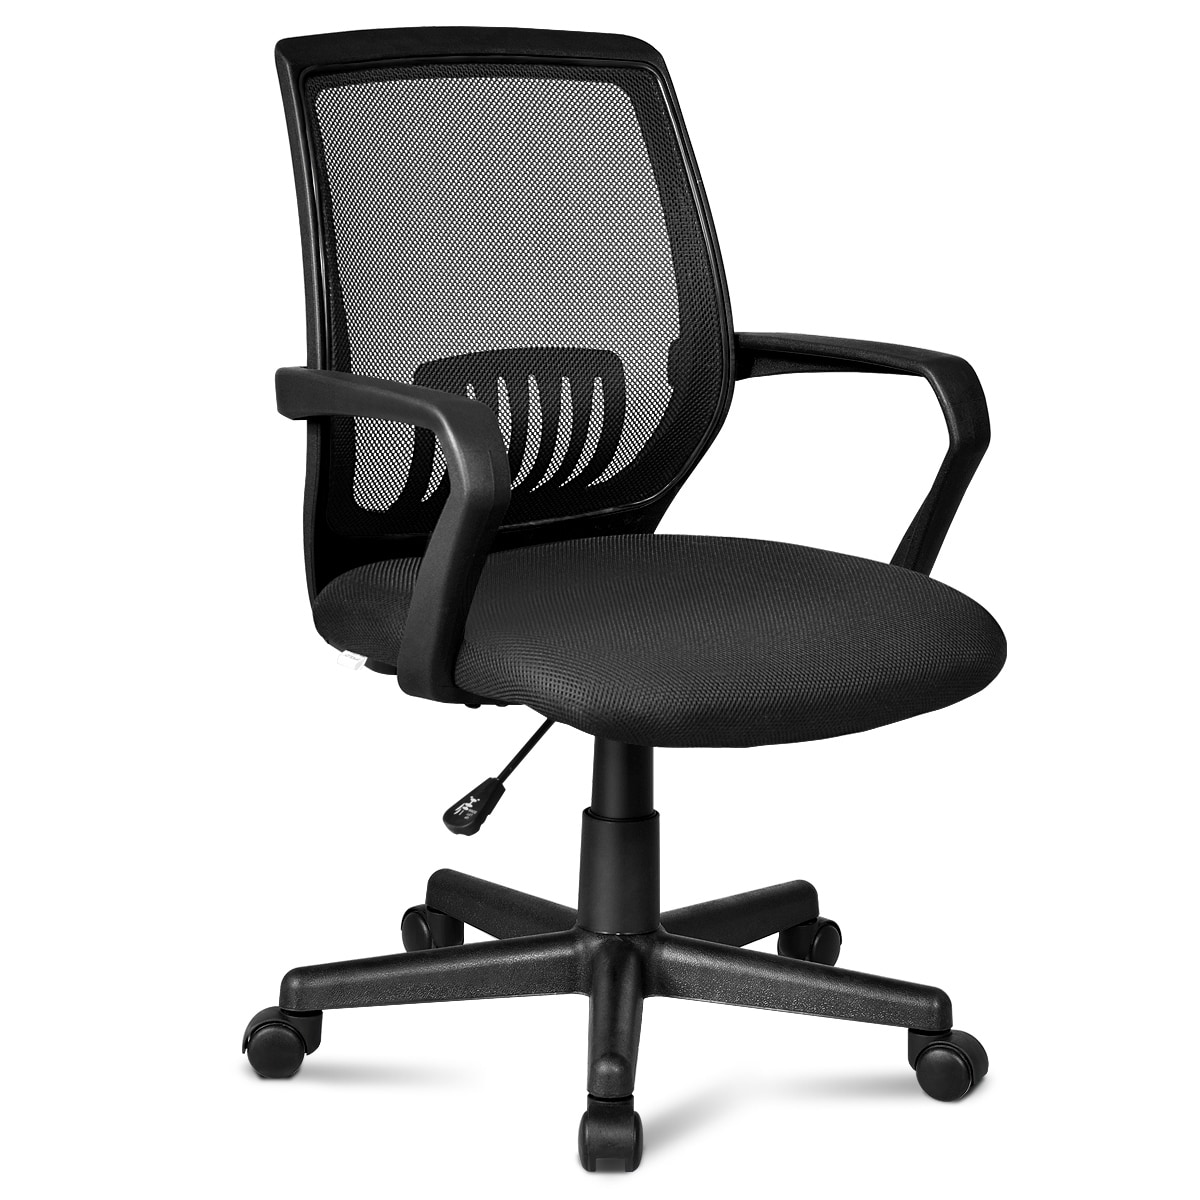 Costway Office Chair Mesh Computer Desk Chair Lumbar Support Adjustable Rolling Swivel